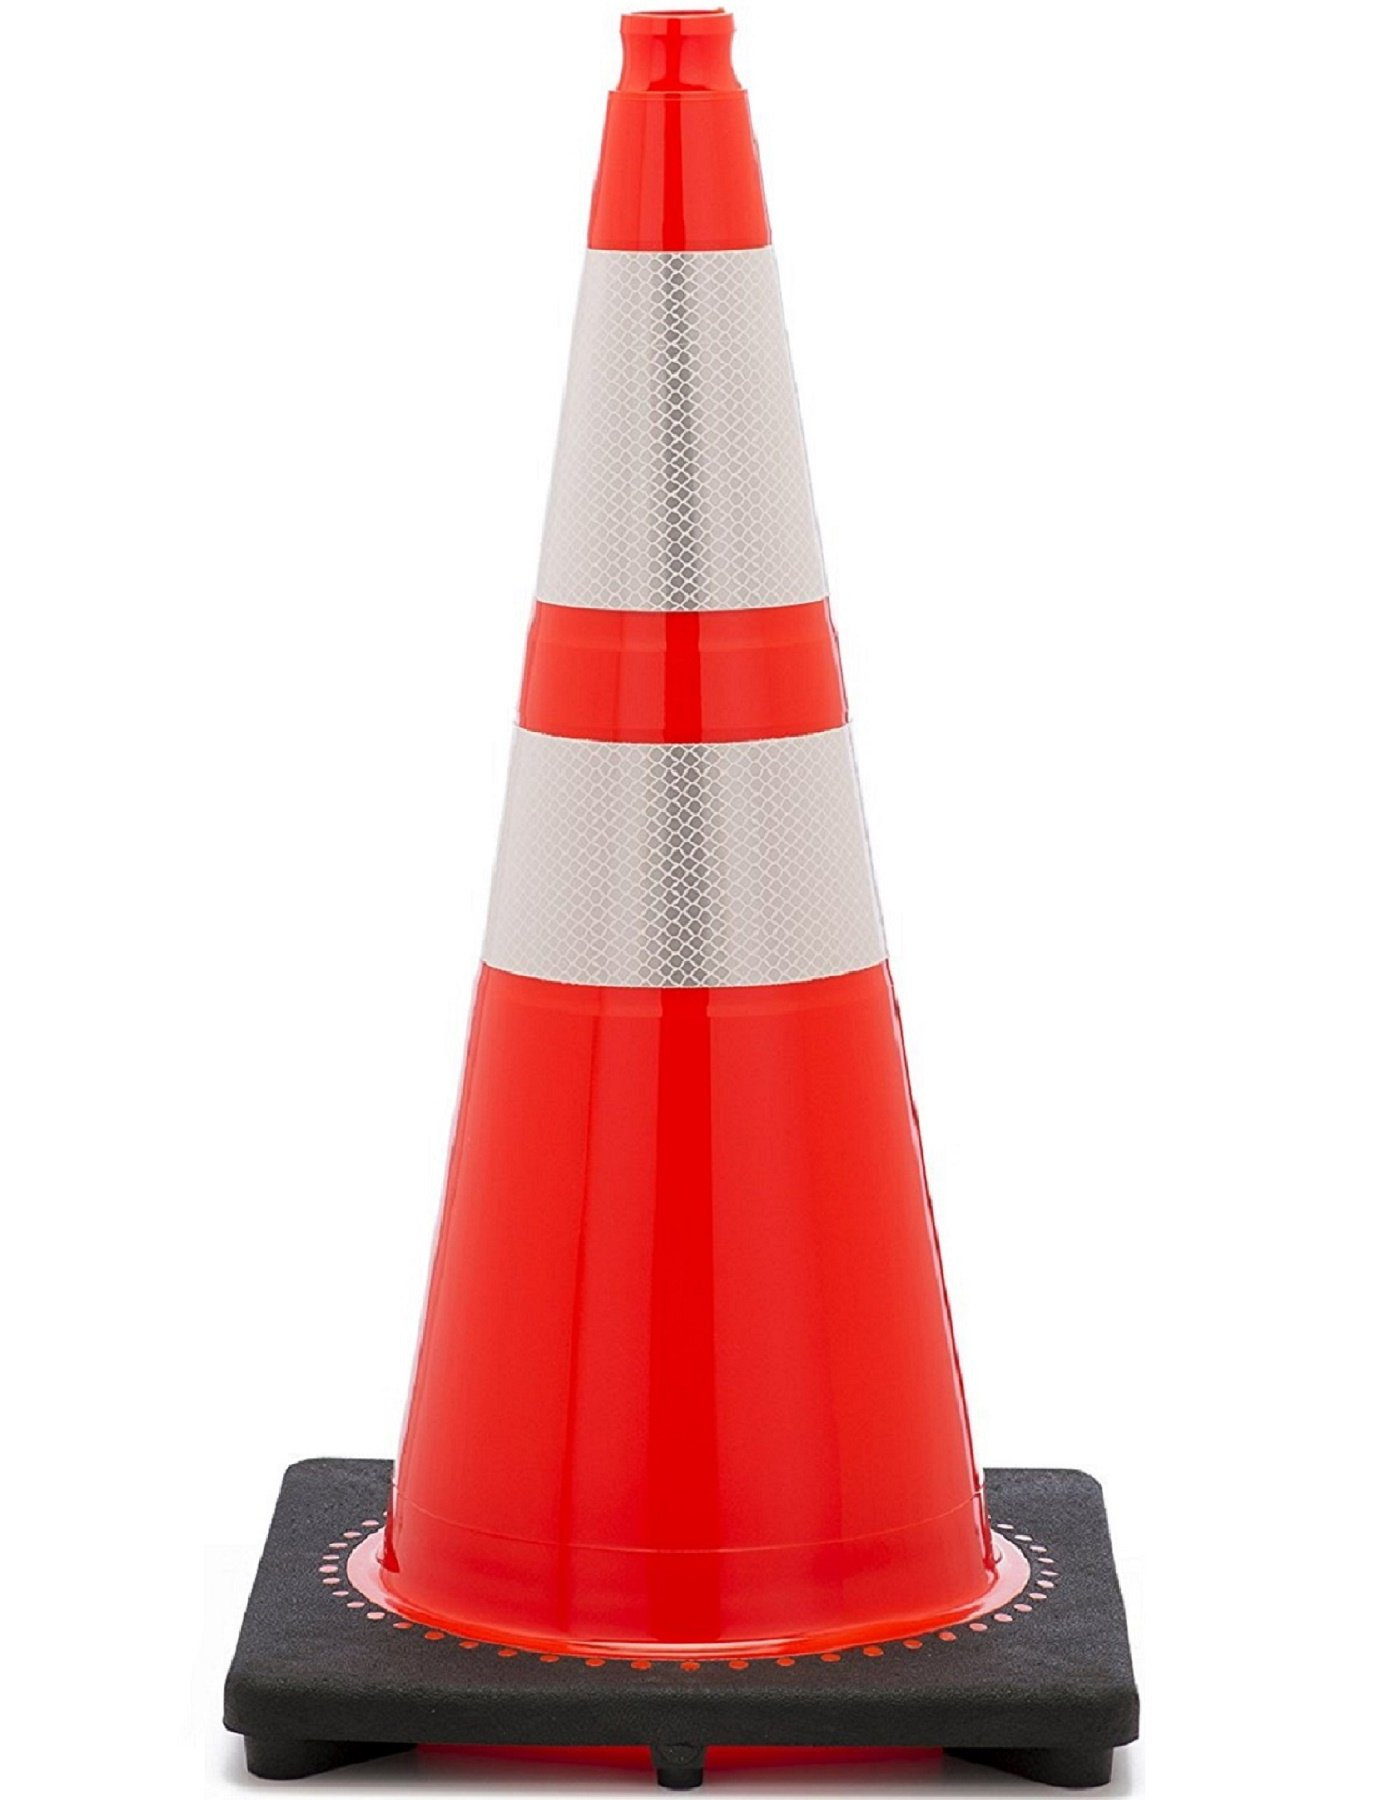 JBC High-Visibility Orange Traffic Cones with 3M Reflective Collars - 28-inch by JBC (Image #1)